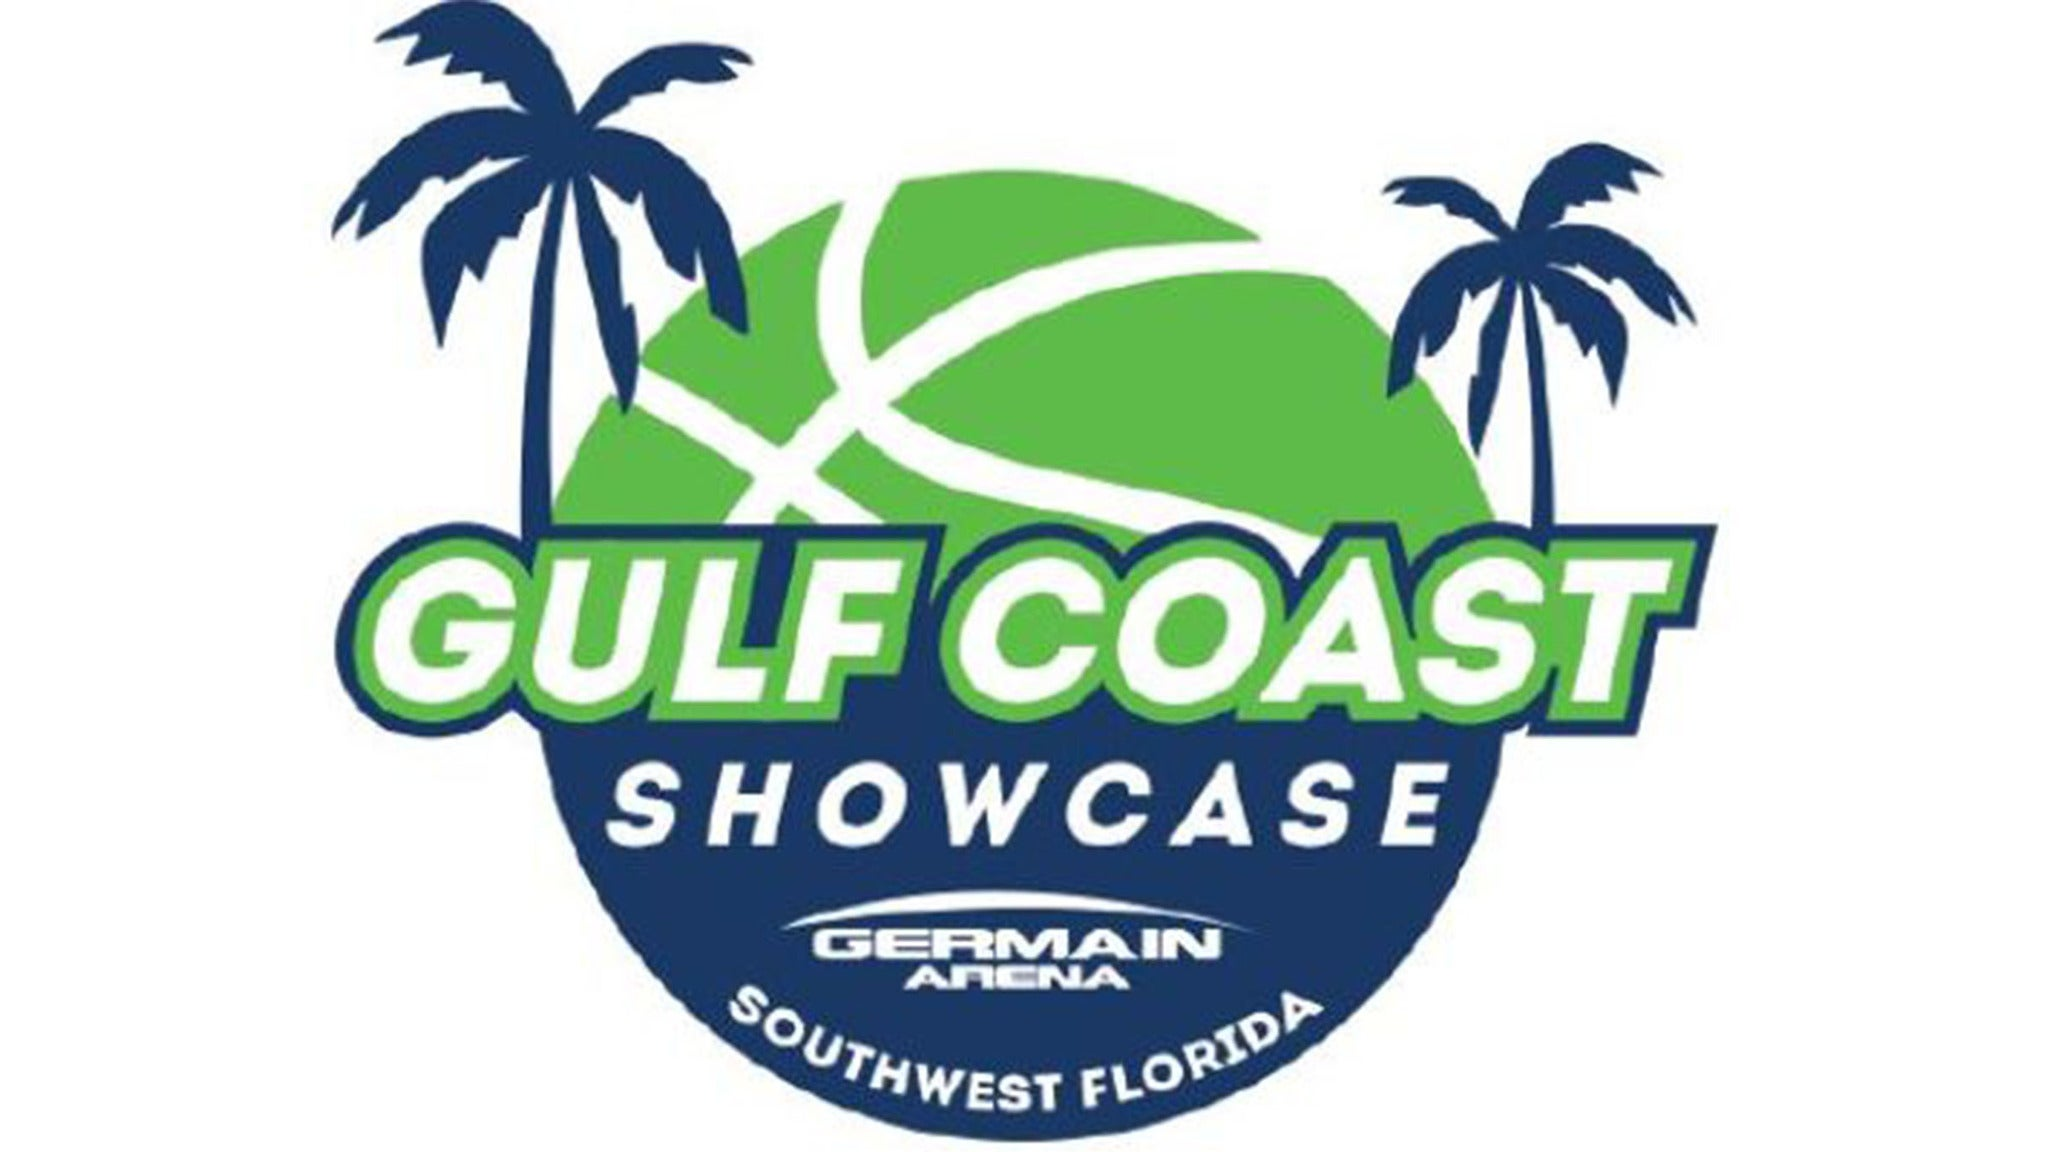 2017 Gulf Coast Showcase at Germain Arena